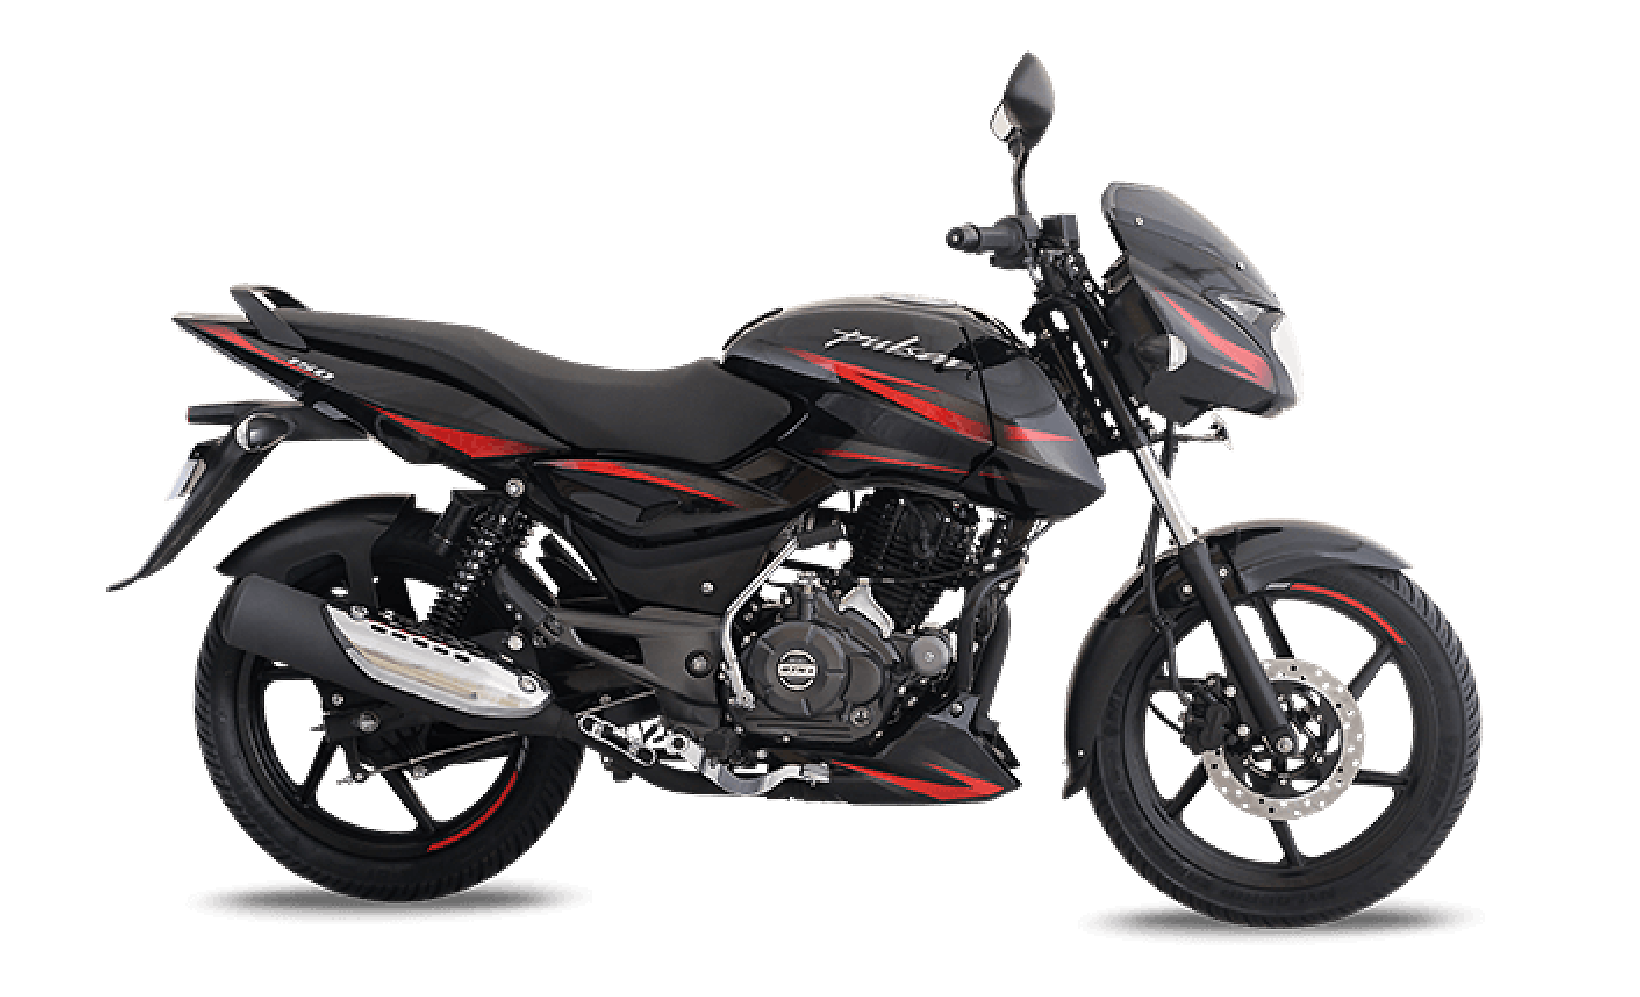 Black and Red Bajaj Pulsar 150cc Motorcycle